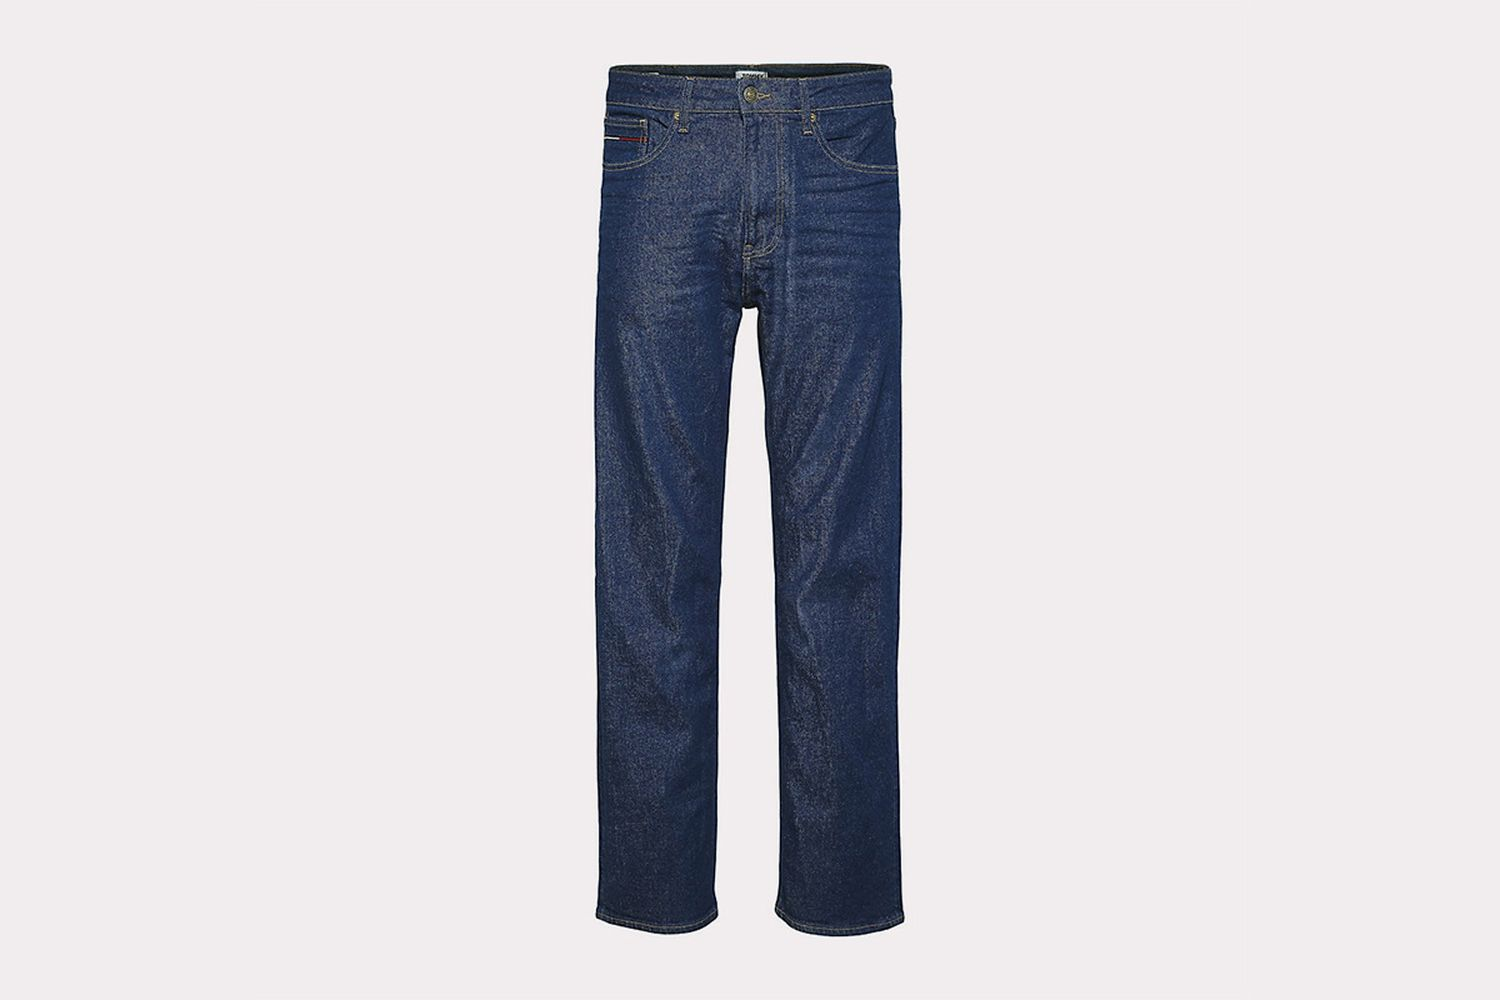 TJ 1951 Relaxed Fit Jeans